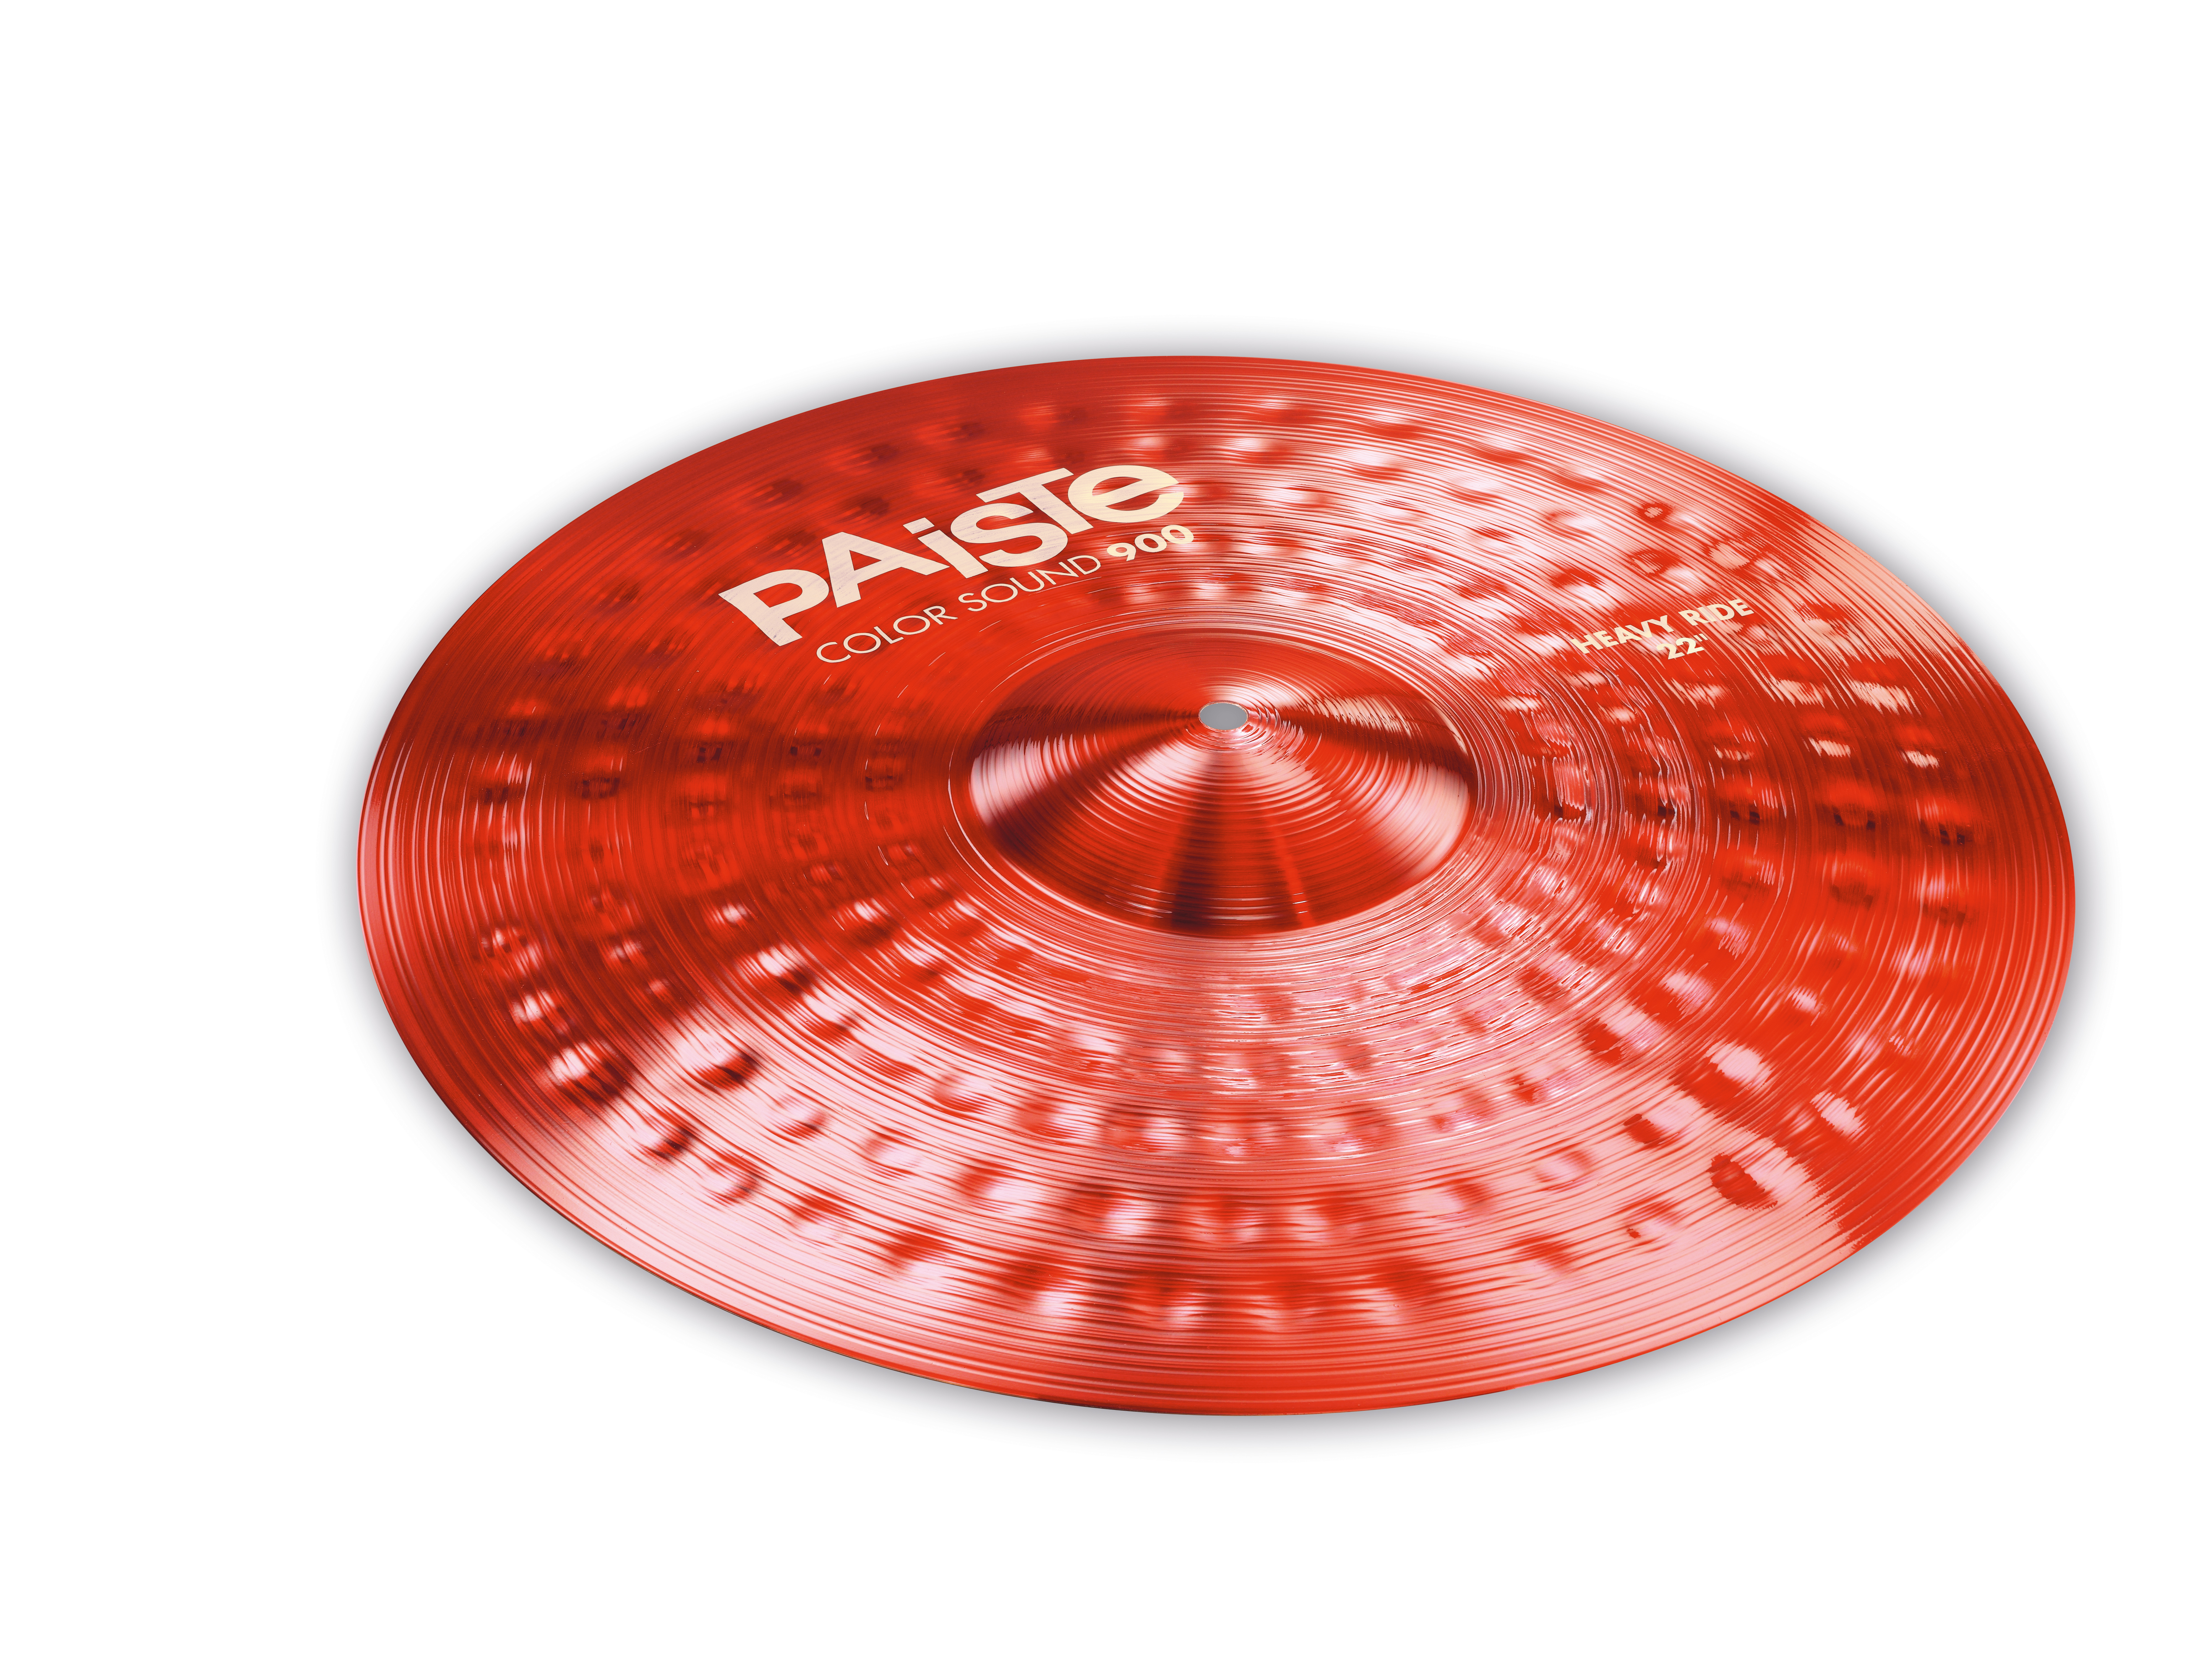 Paiste 20  Farbe Sound 900-Series Long Sustain Heavy rot Ride Cymbal 1922720